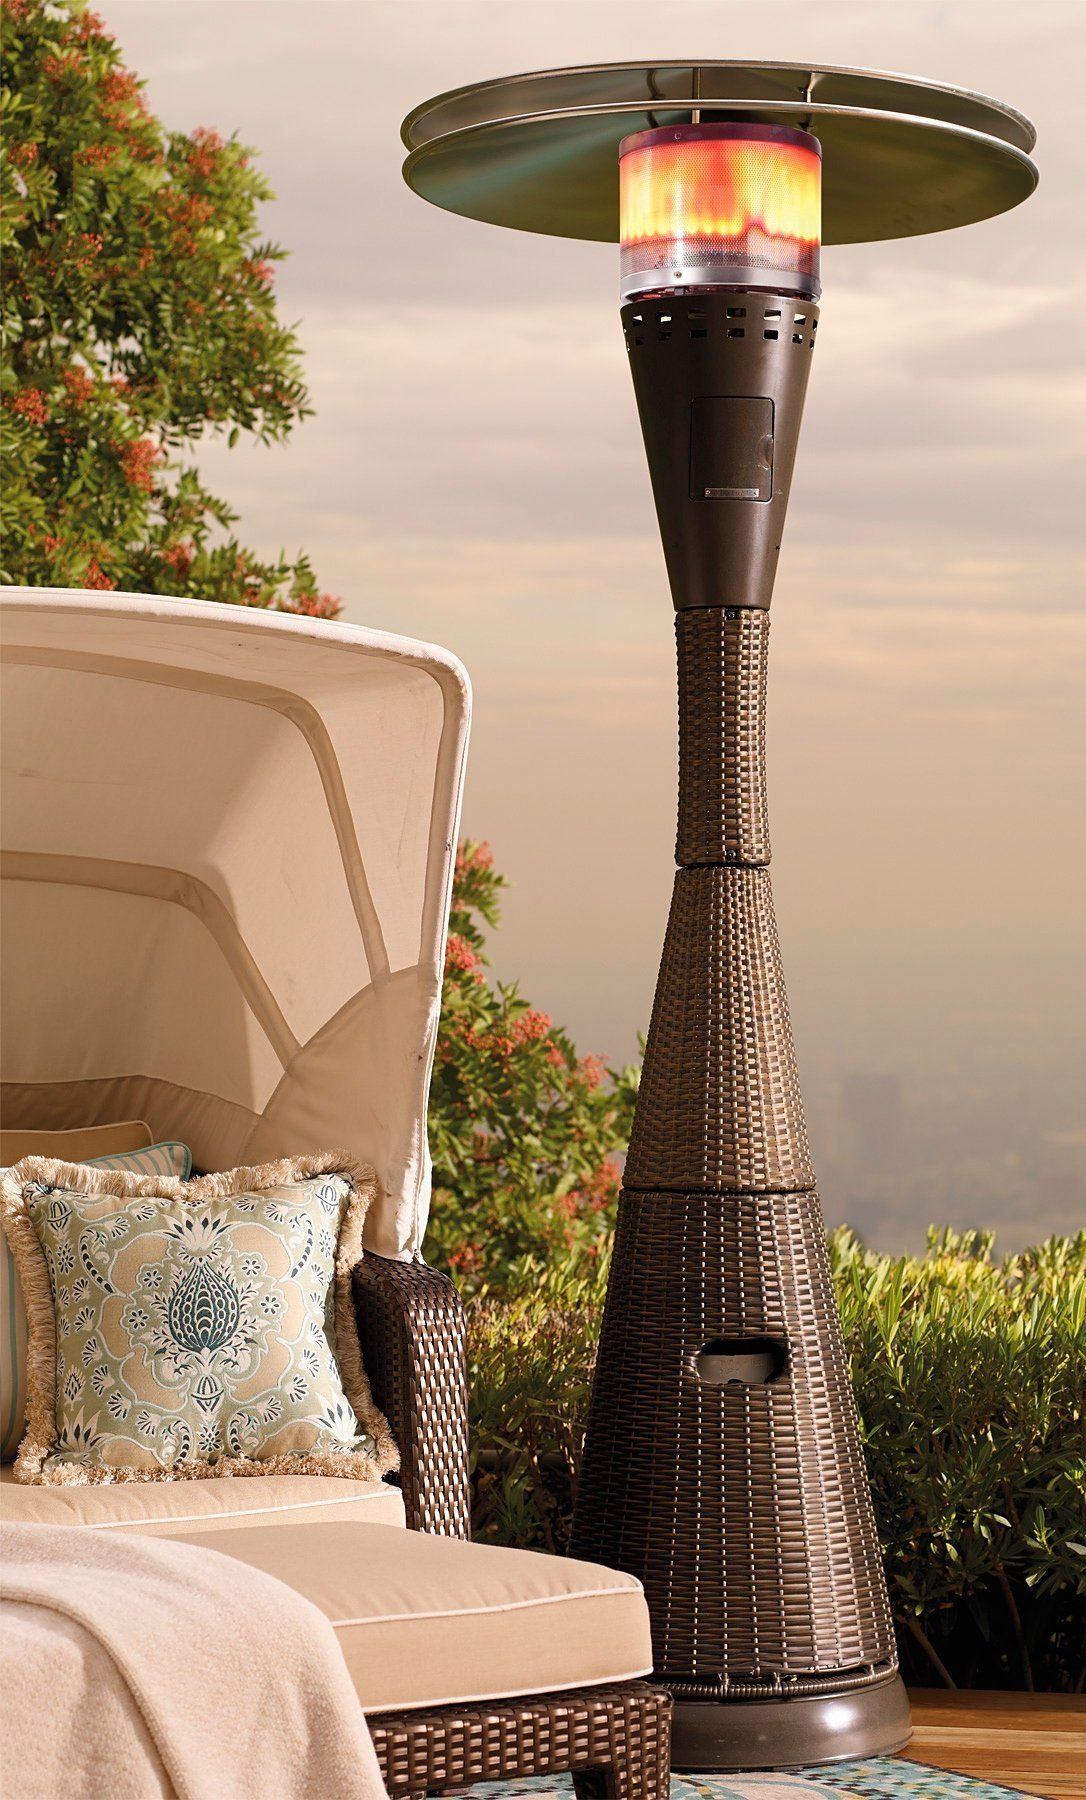 Our towering Allweather Woven Heater blends in seamlessly